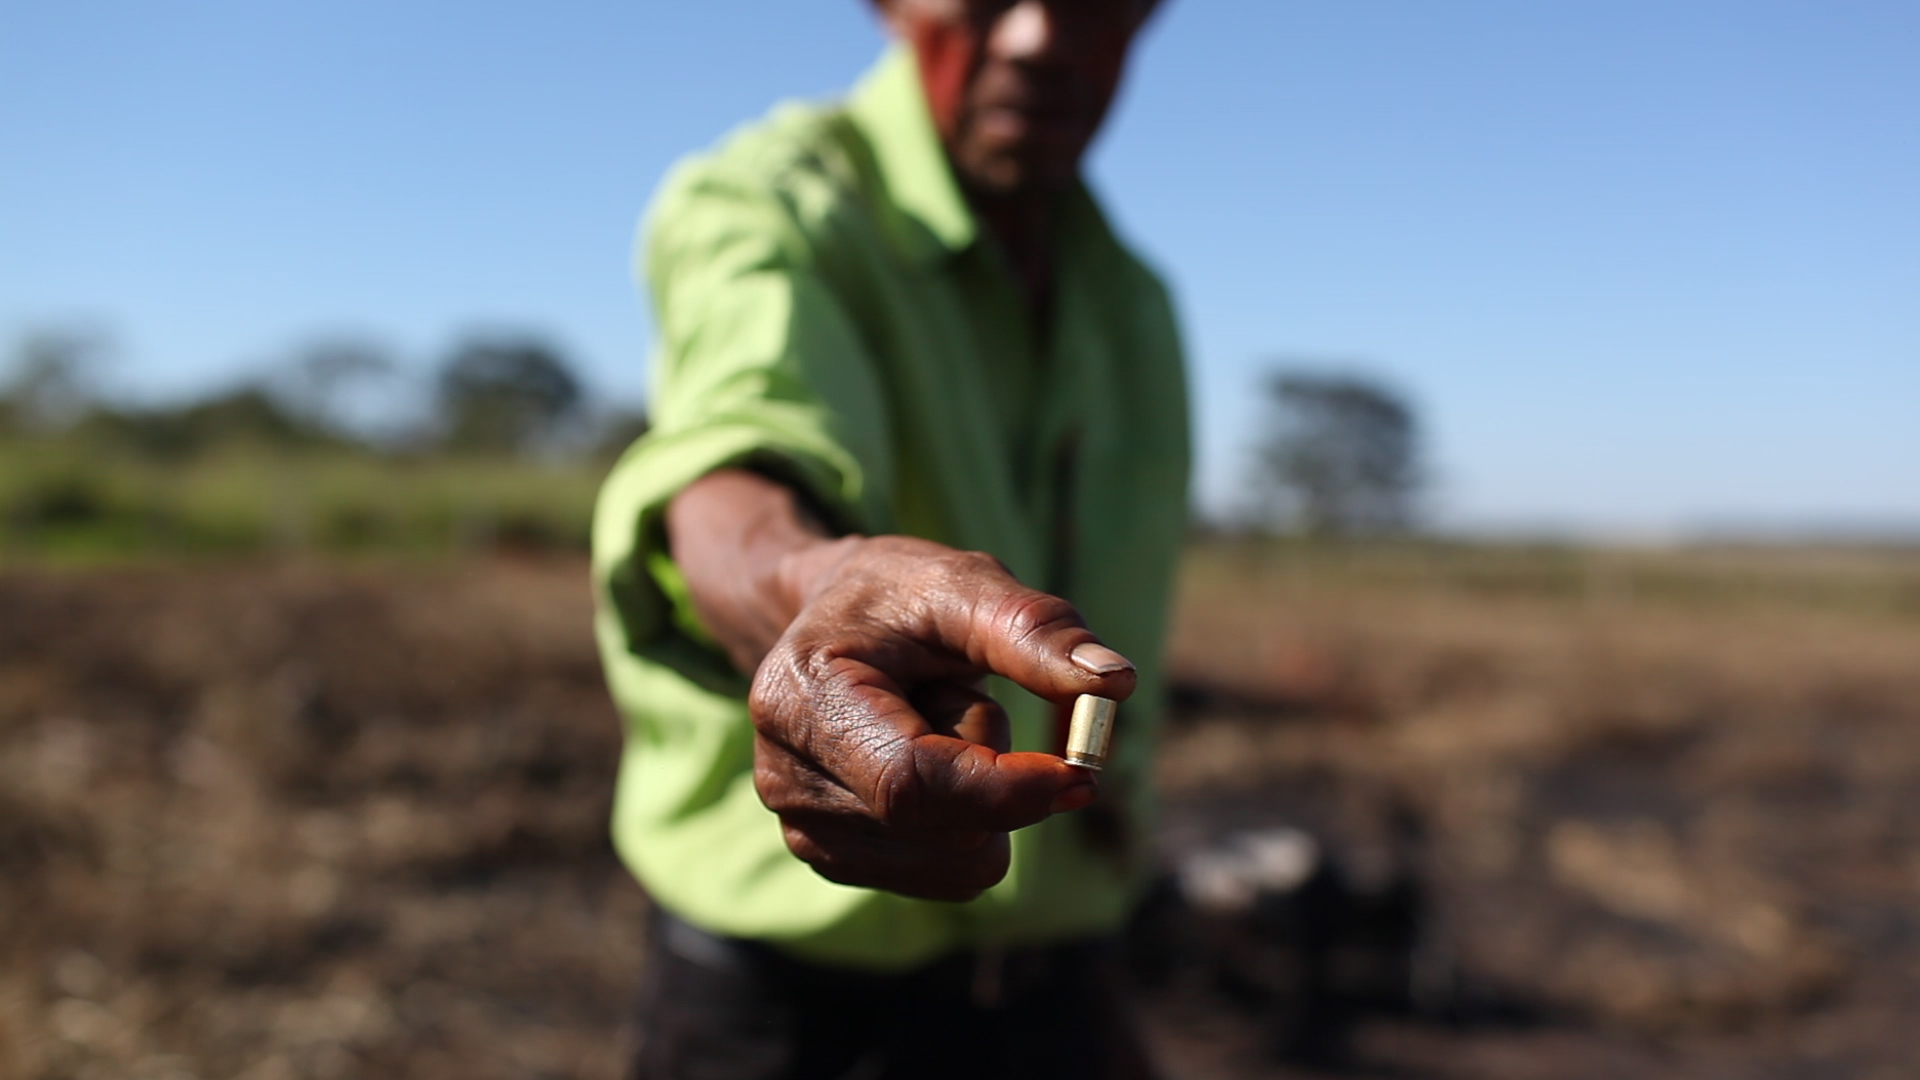 An indigenous man shows a bullet fired at the Yvu farm in a June 2016 conflict between Guarani Kaiowá Indians and Mato Grosso do Sul farmers. Photo courtesy of CIMI